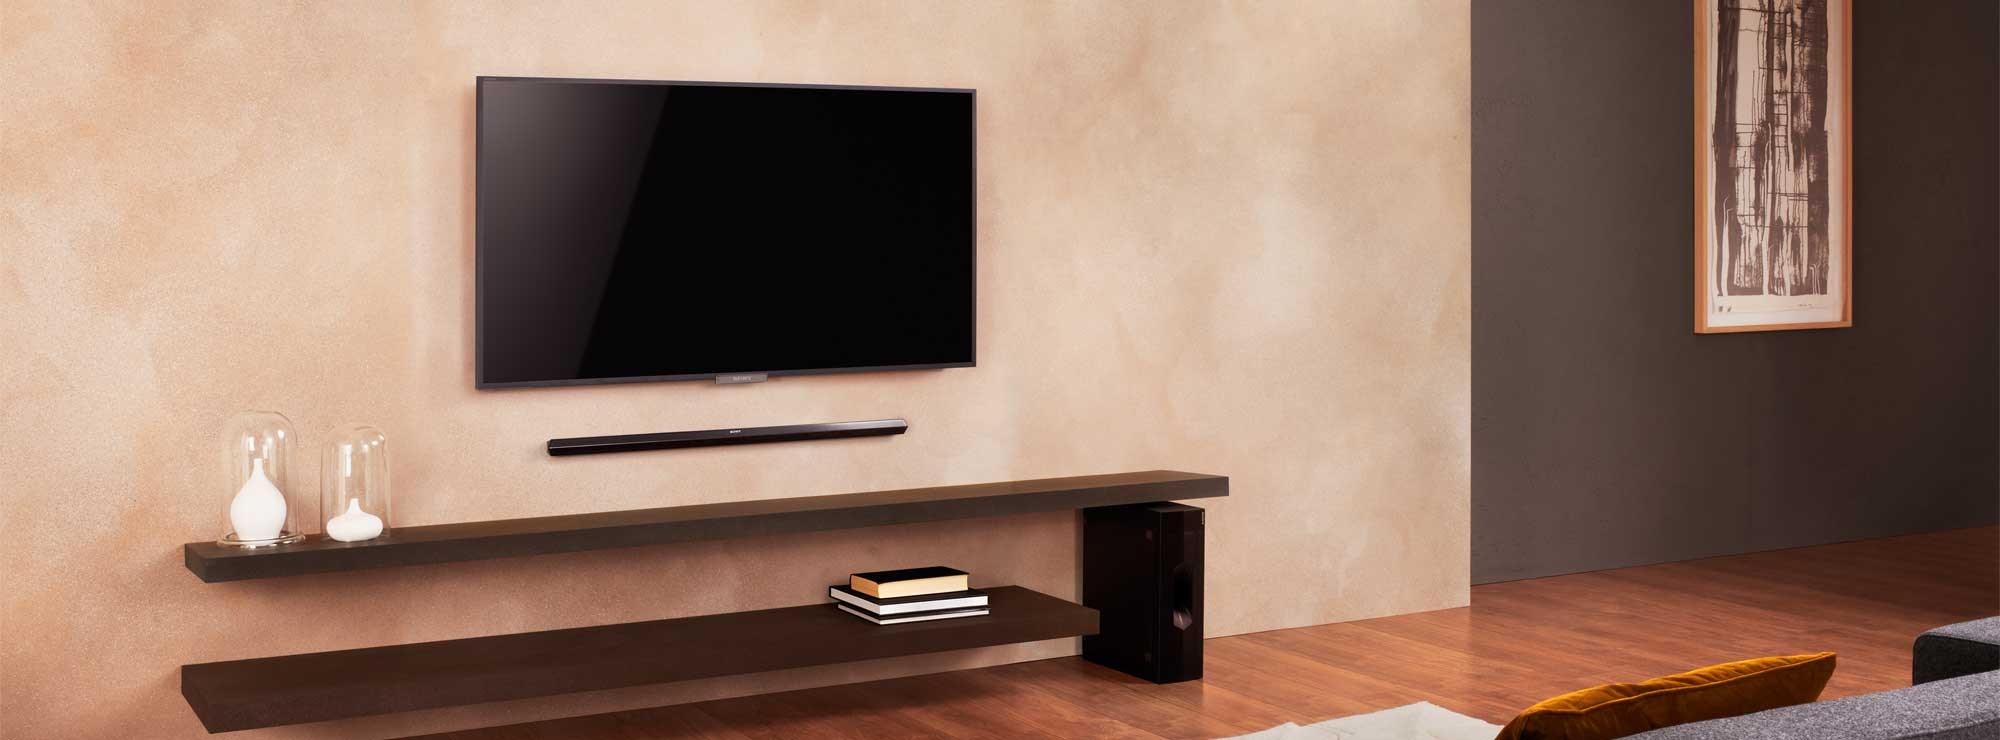 Home Theater Soundbar A Cost Effective Alternative